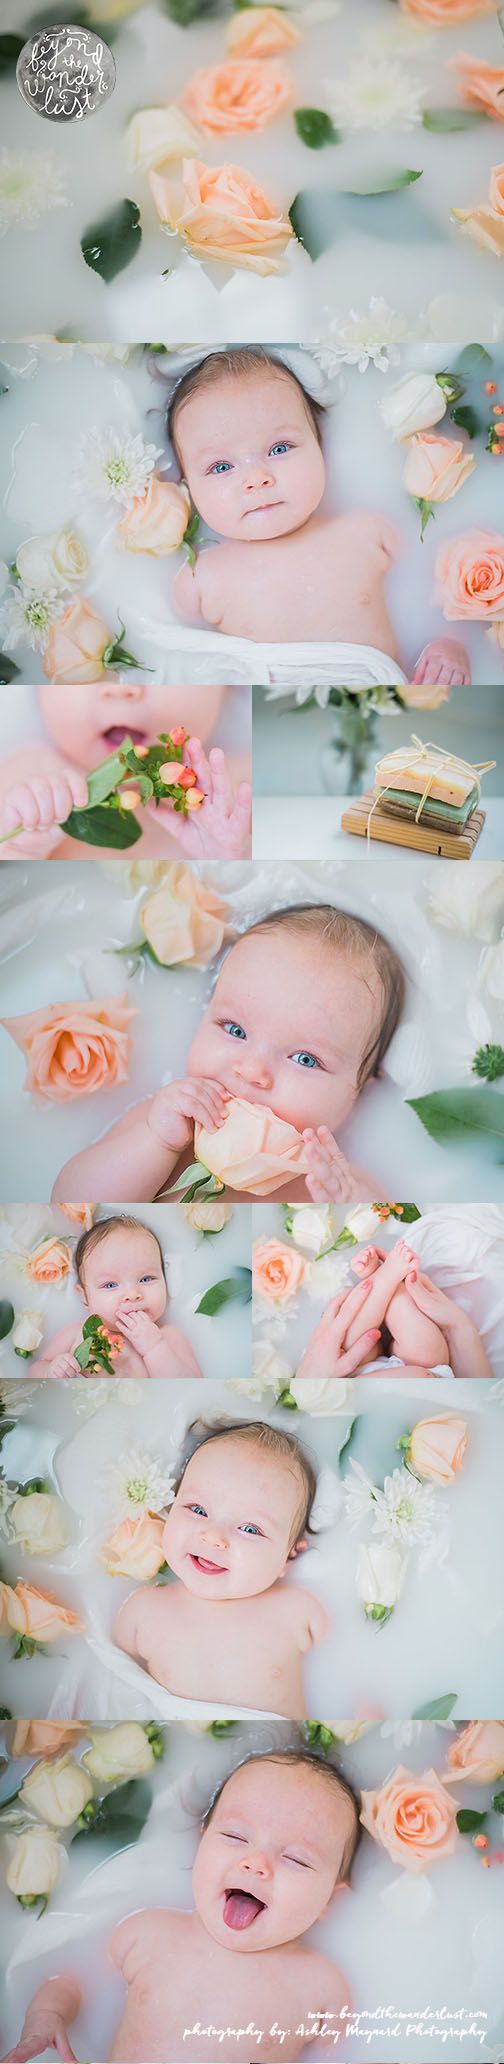 Milk Bath, Baby picture ideas